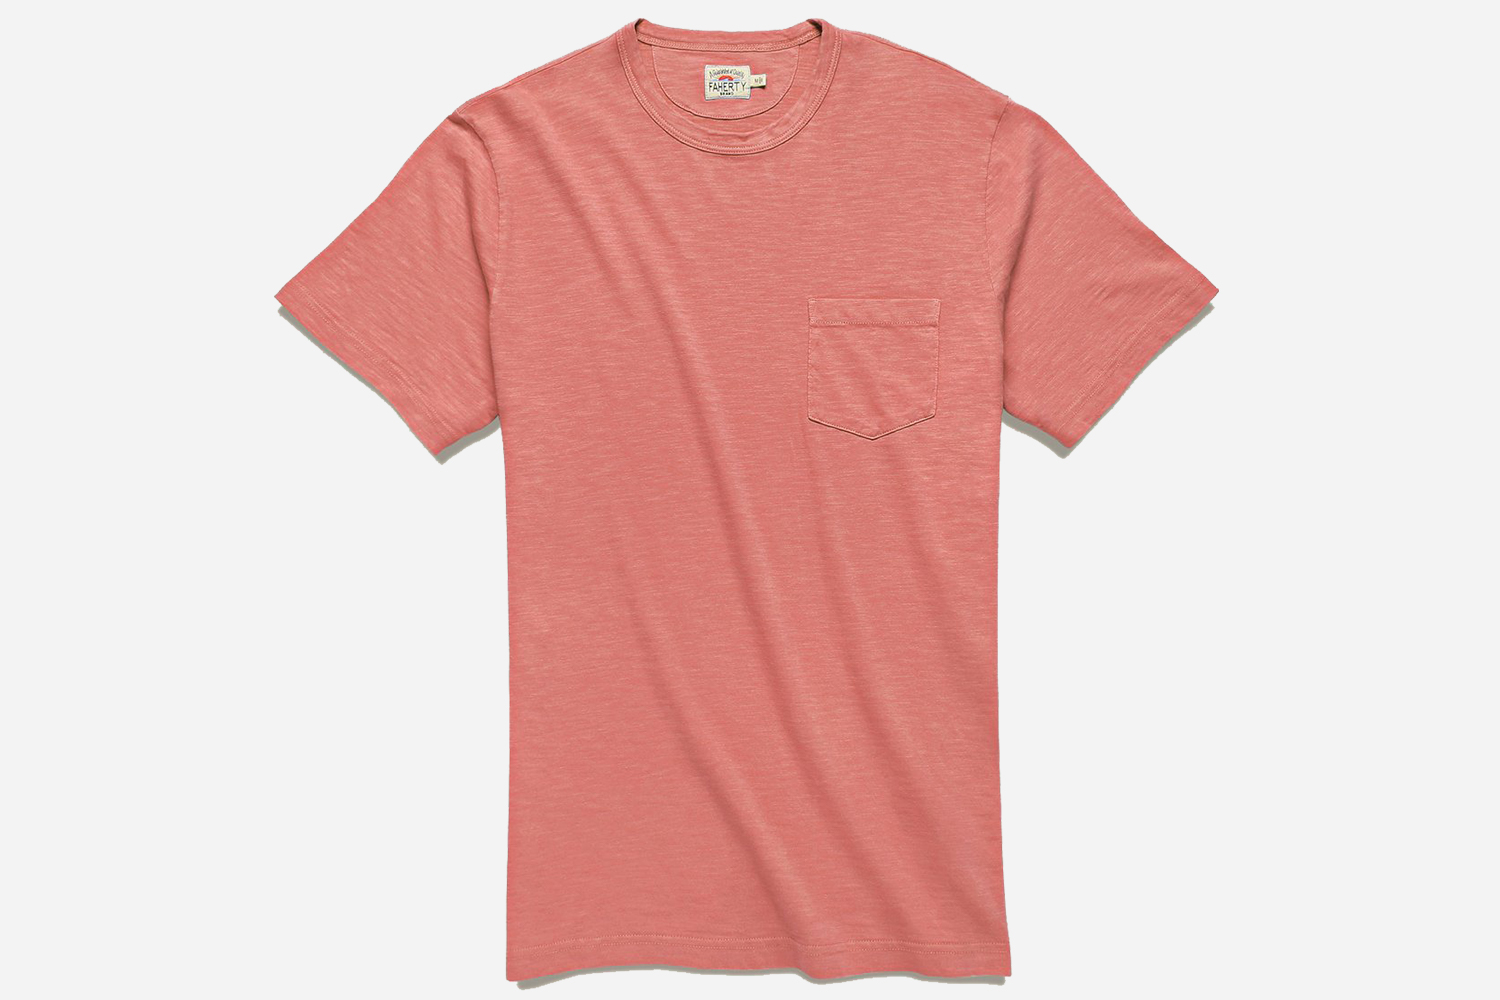 Faherty Garment Dyed Pocket Tee